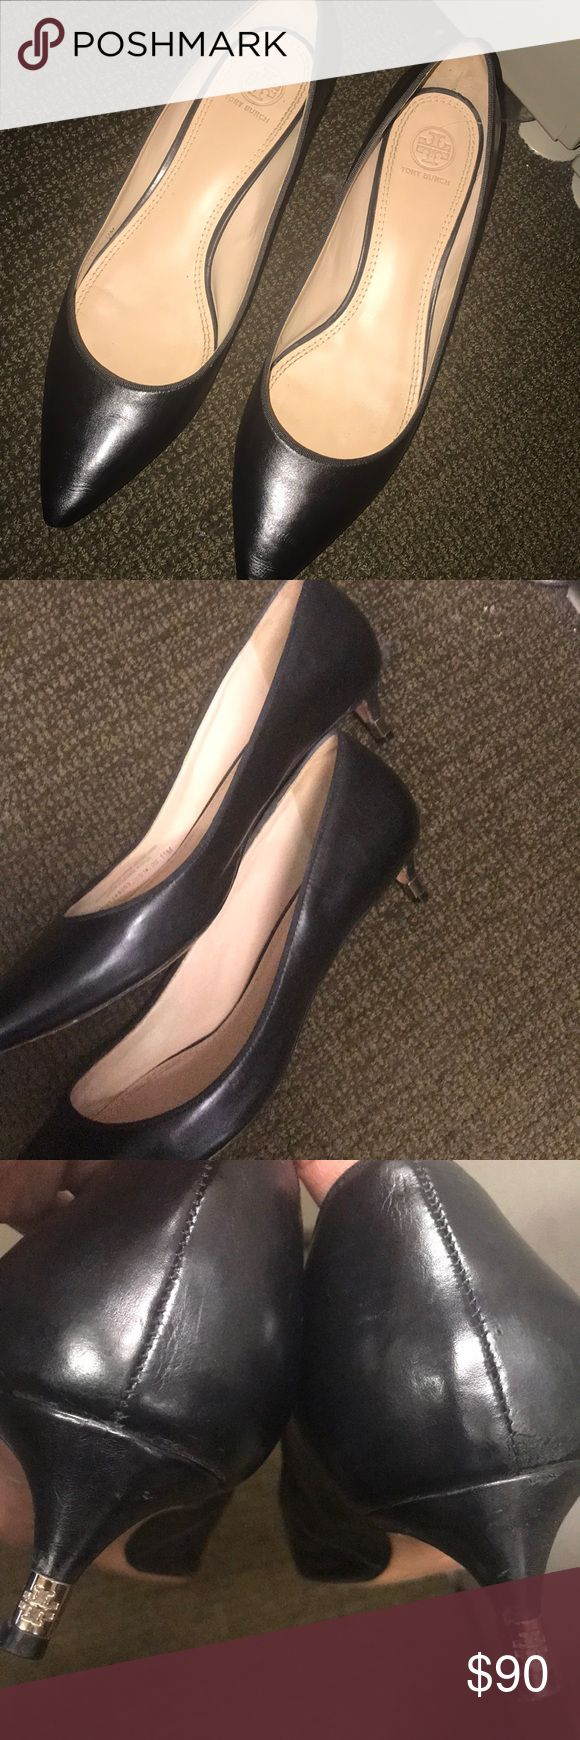 Tory Burch Greenwich Kitten Heels Leather kitten Heel Pump 1  1/2 heel with Gold detail Pointed toe Padded leather footbed. Great condition see photos😍 Tory Burch Shoes Heels